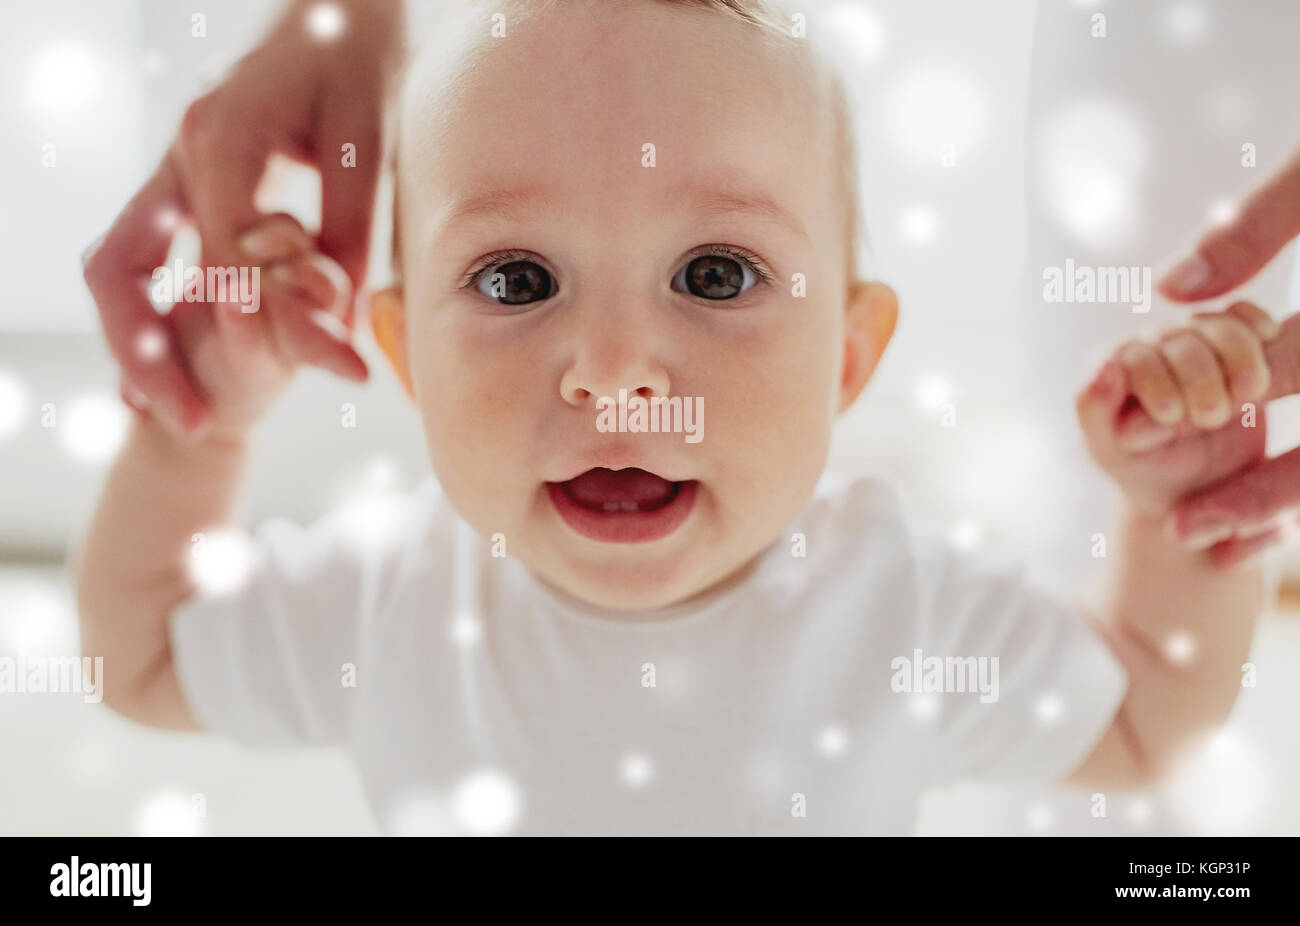 happy baby learning to walk with mother help - Stock Image